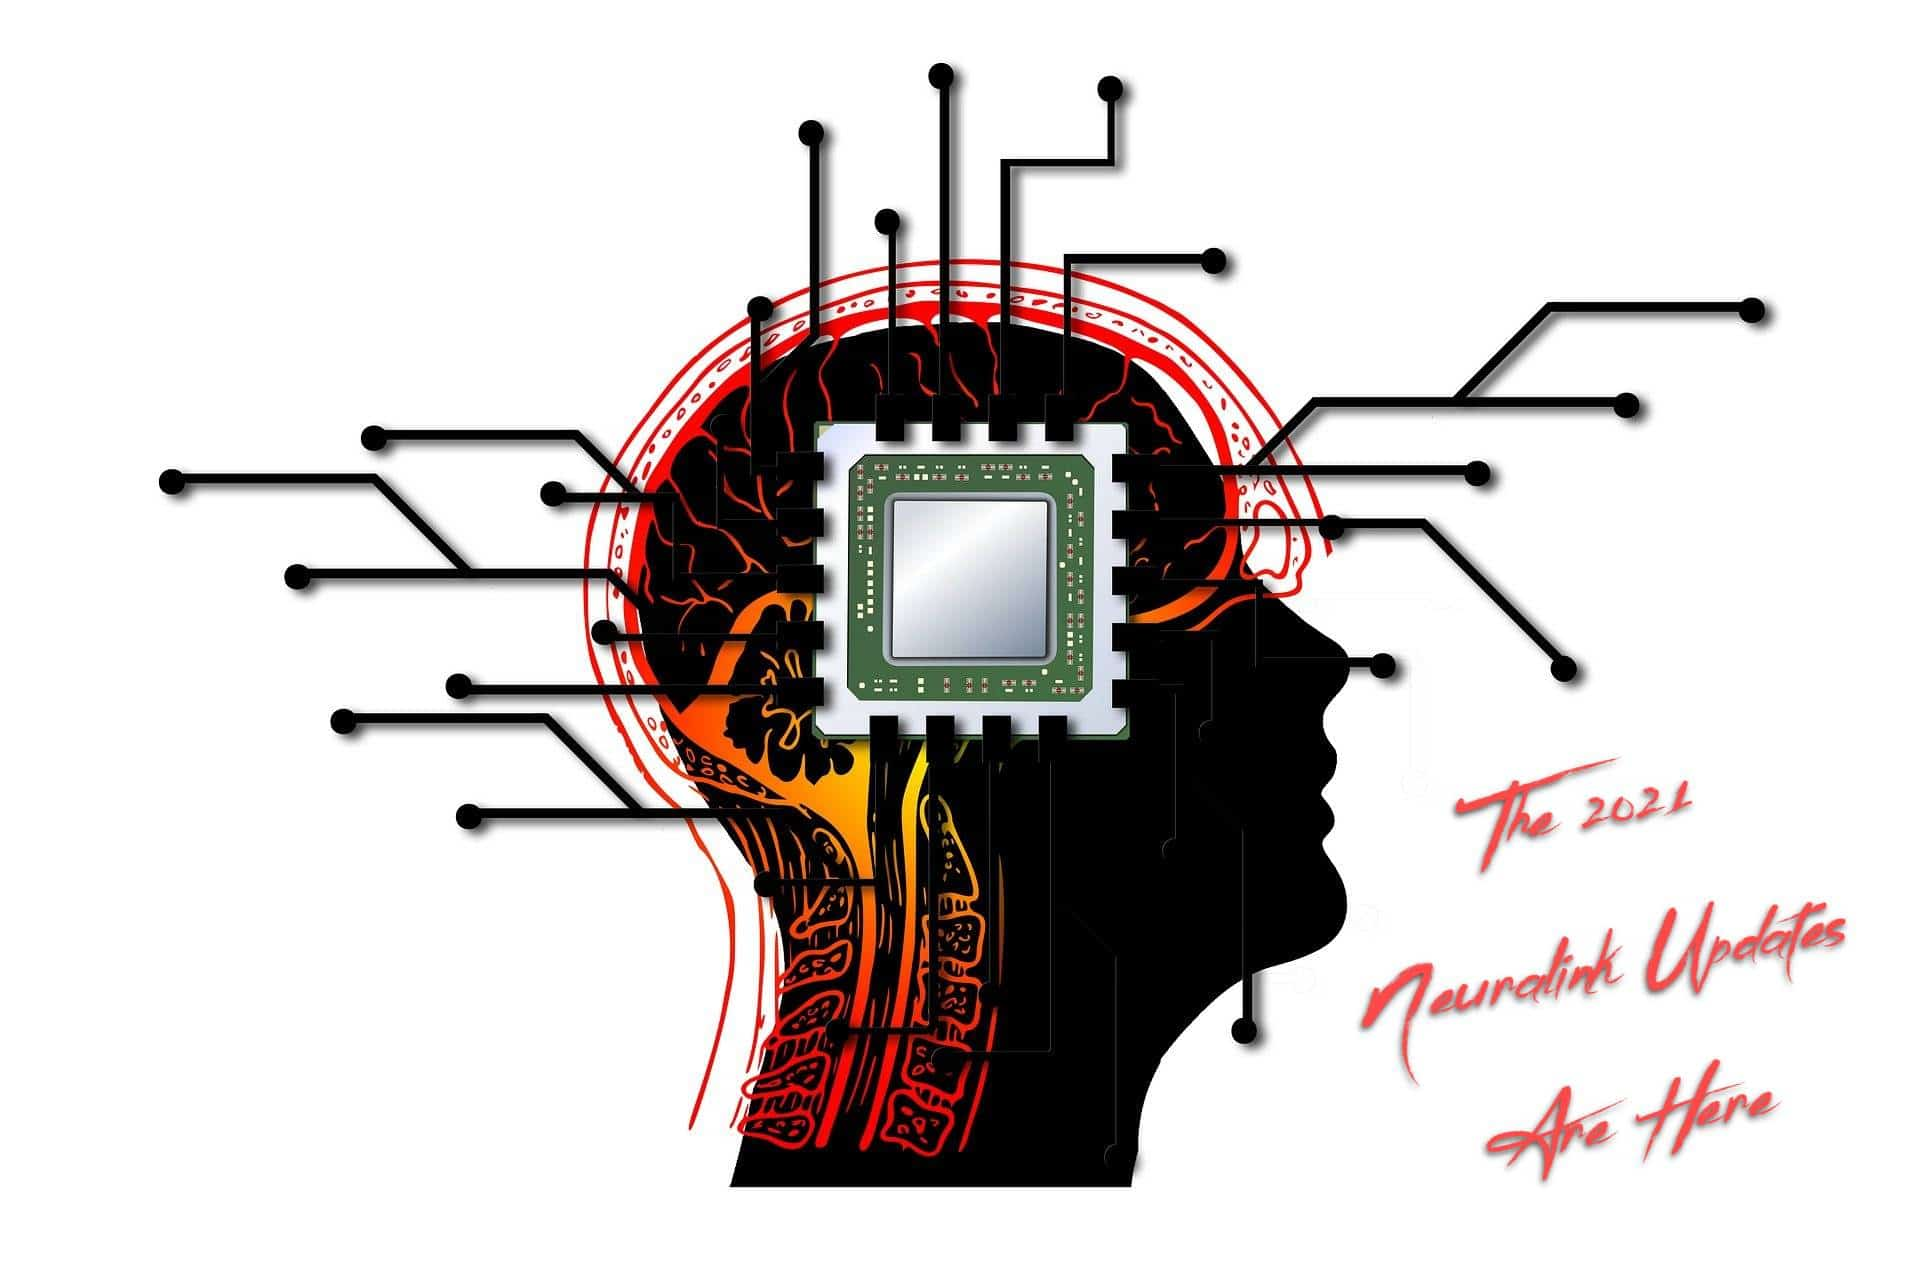 The 2021 Neuralink Updates Are Here